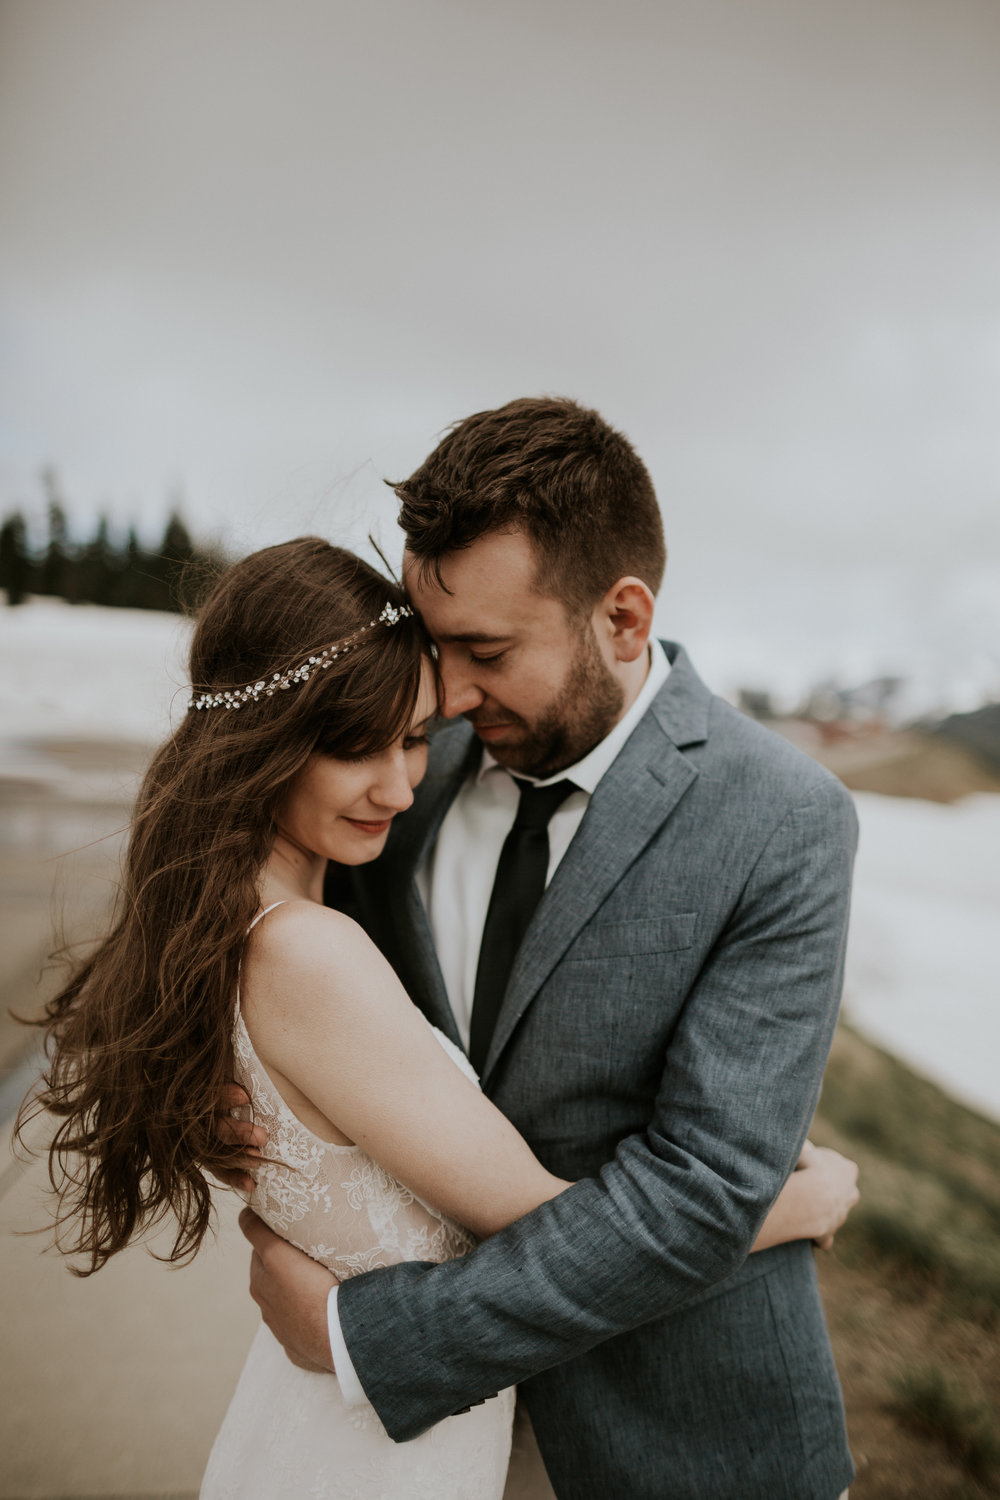 PNW-elopement-wedding-engagement-olympic national park-port angeles-hurricane ridge-lake crescent-kayla dawn photography- photographer-photography-kayladawnphoto-181.jpg